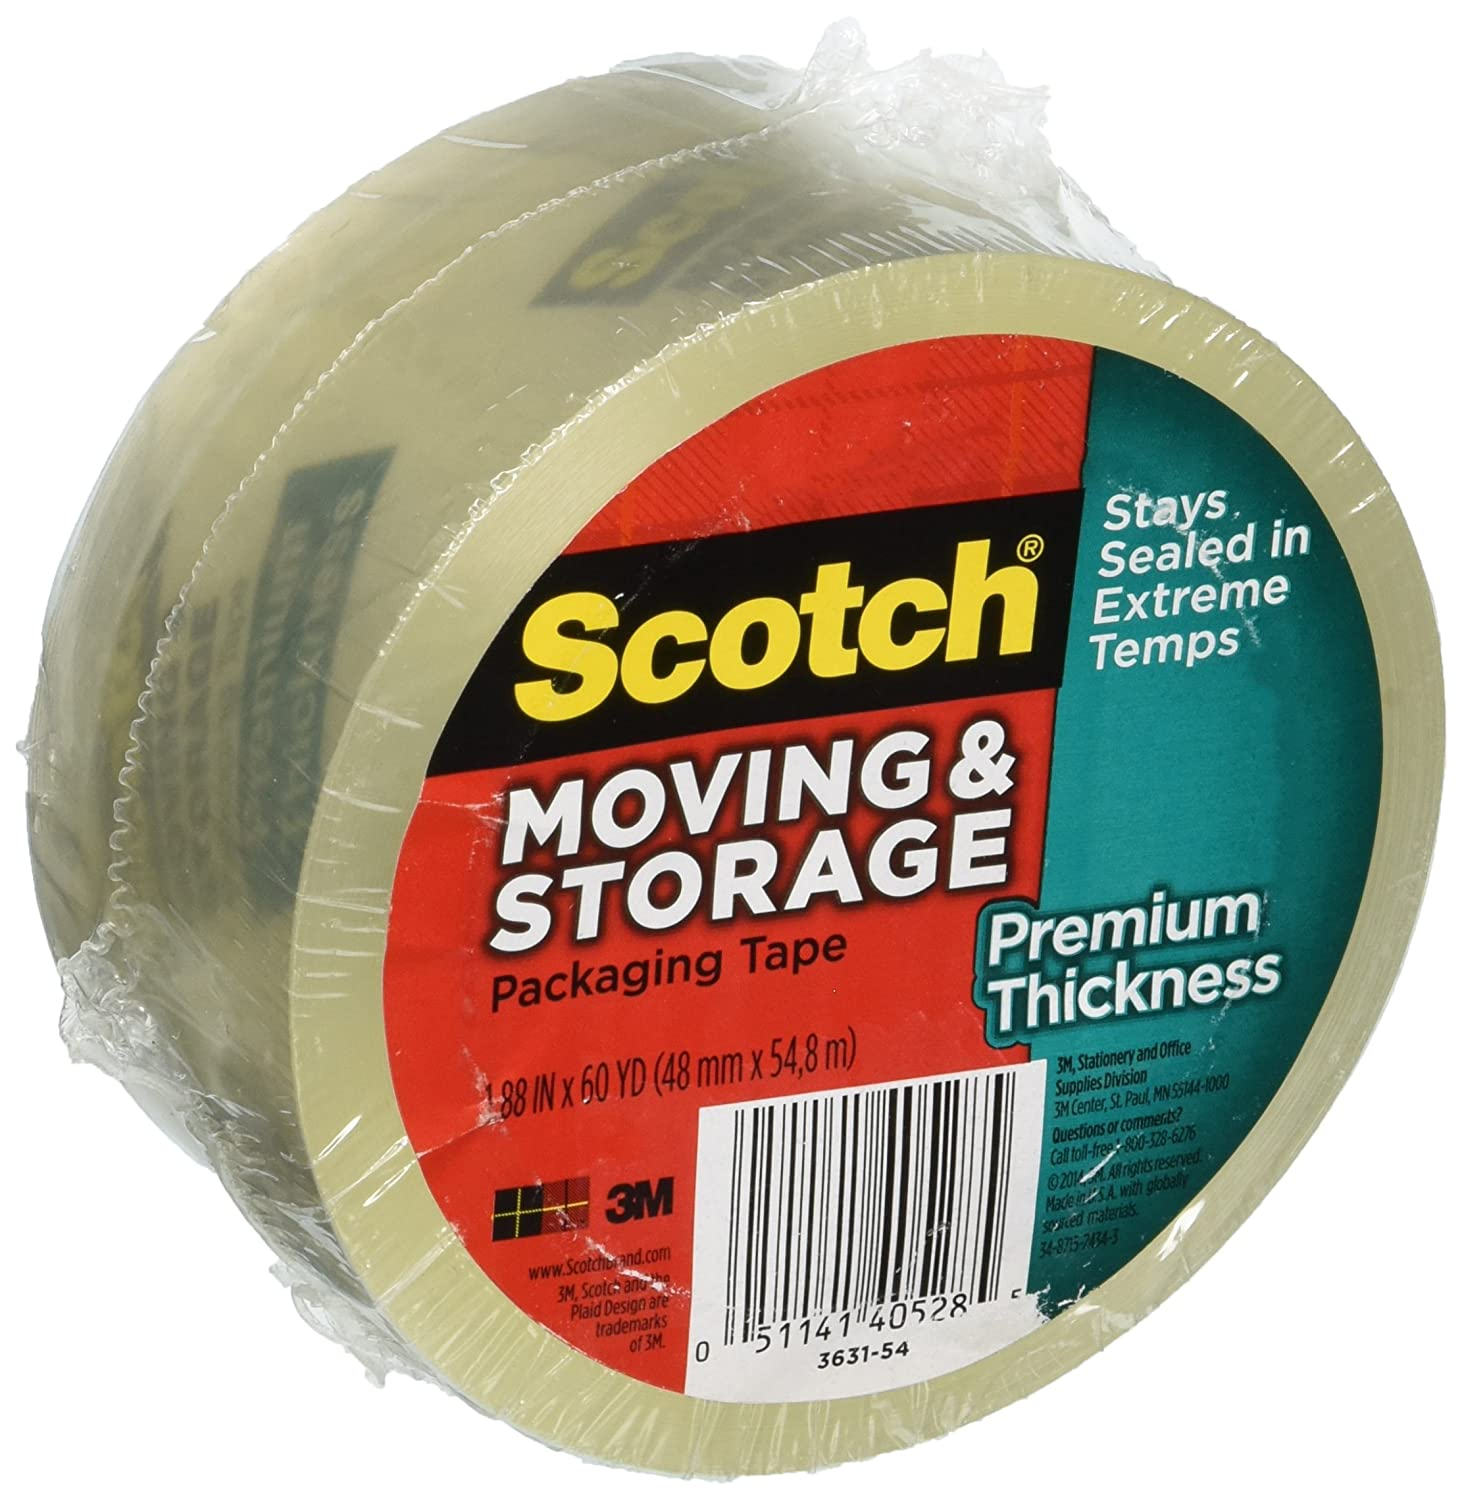 3M Scotch Moving/Storage Packaging Tape B00U7VZWKK